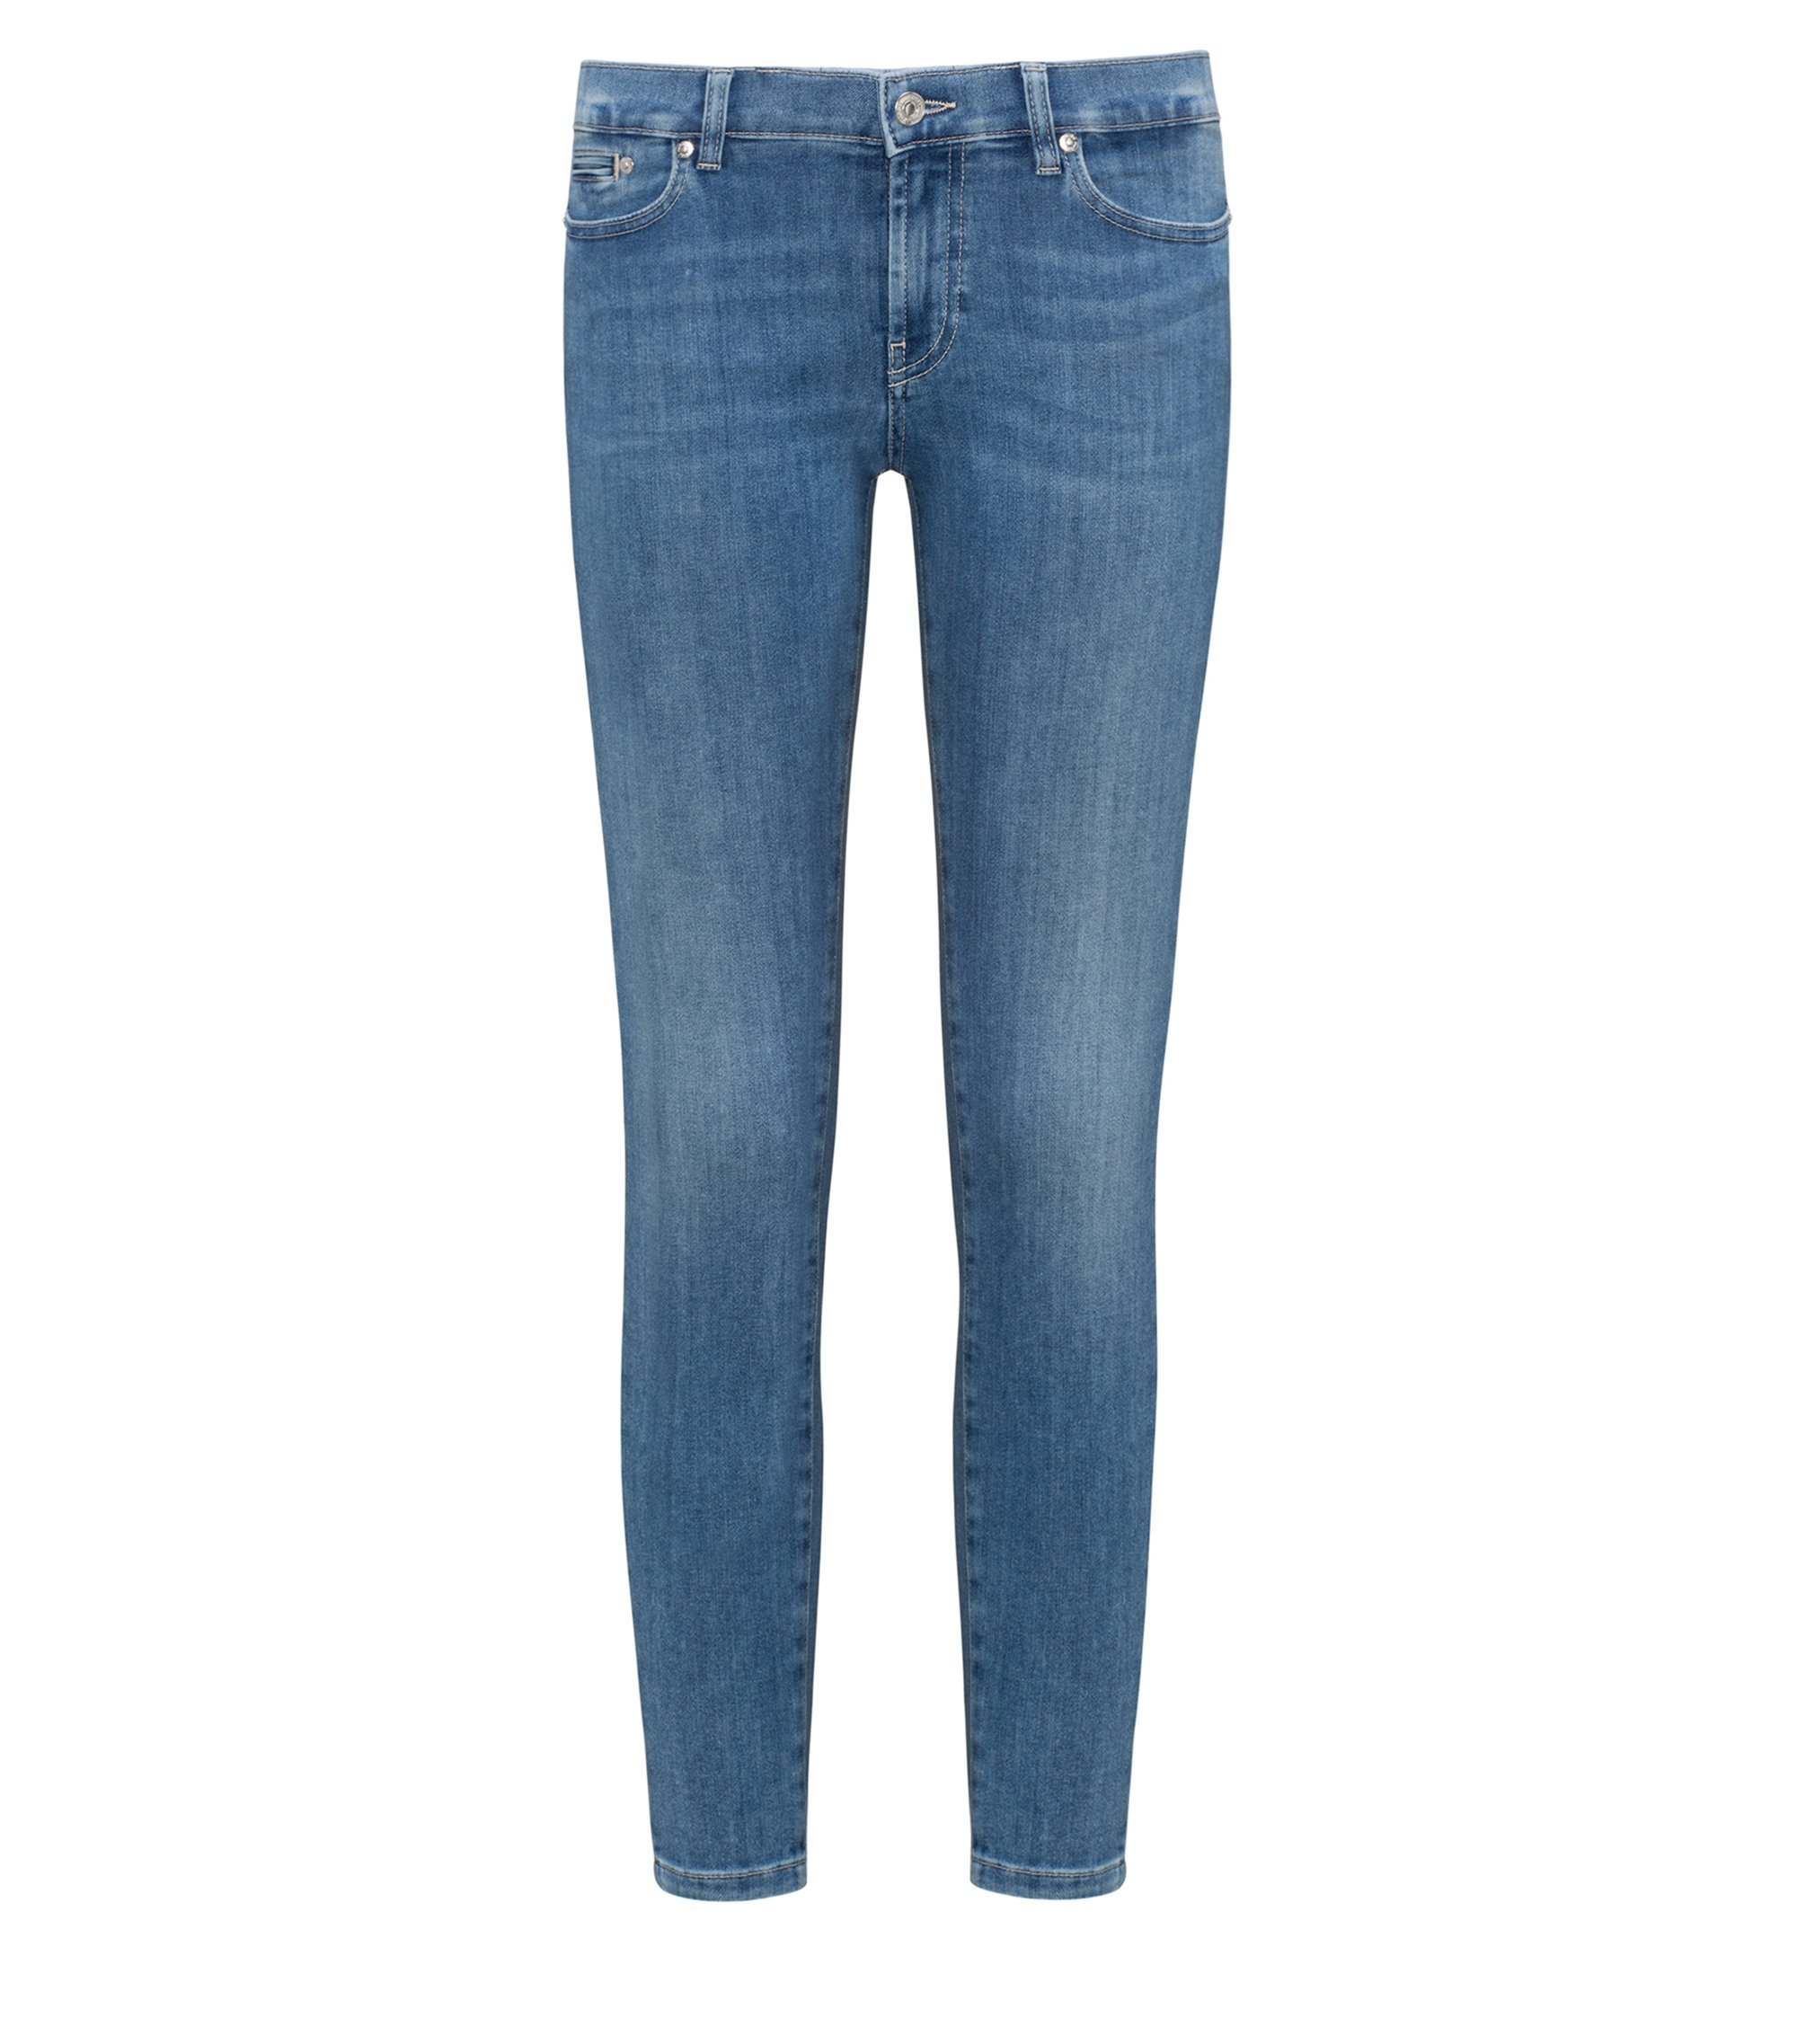 Stretch Cotton Jean, Skinny Fit | Gilljana, Light Blue